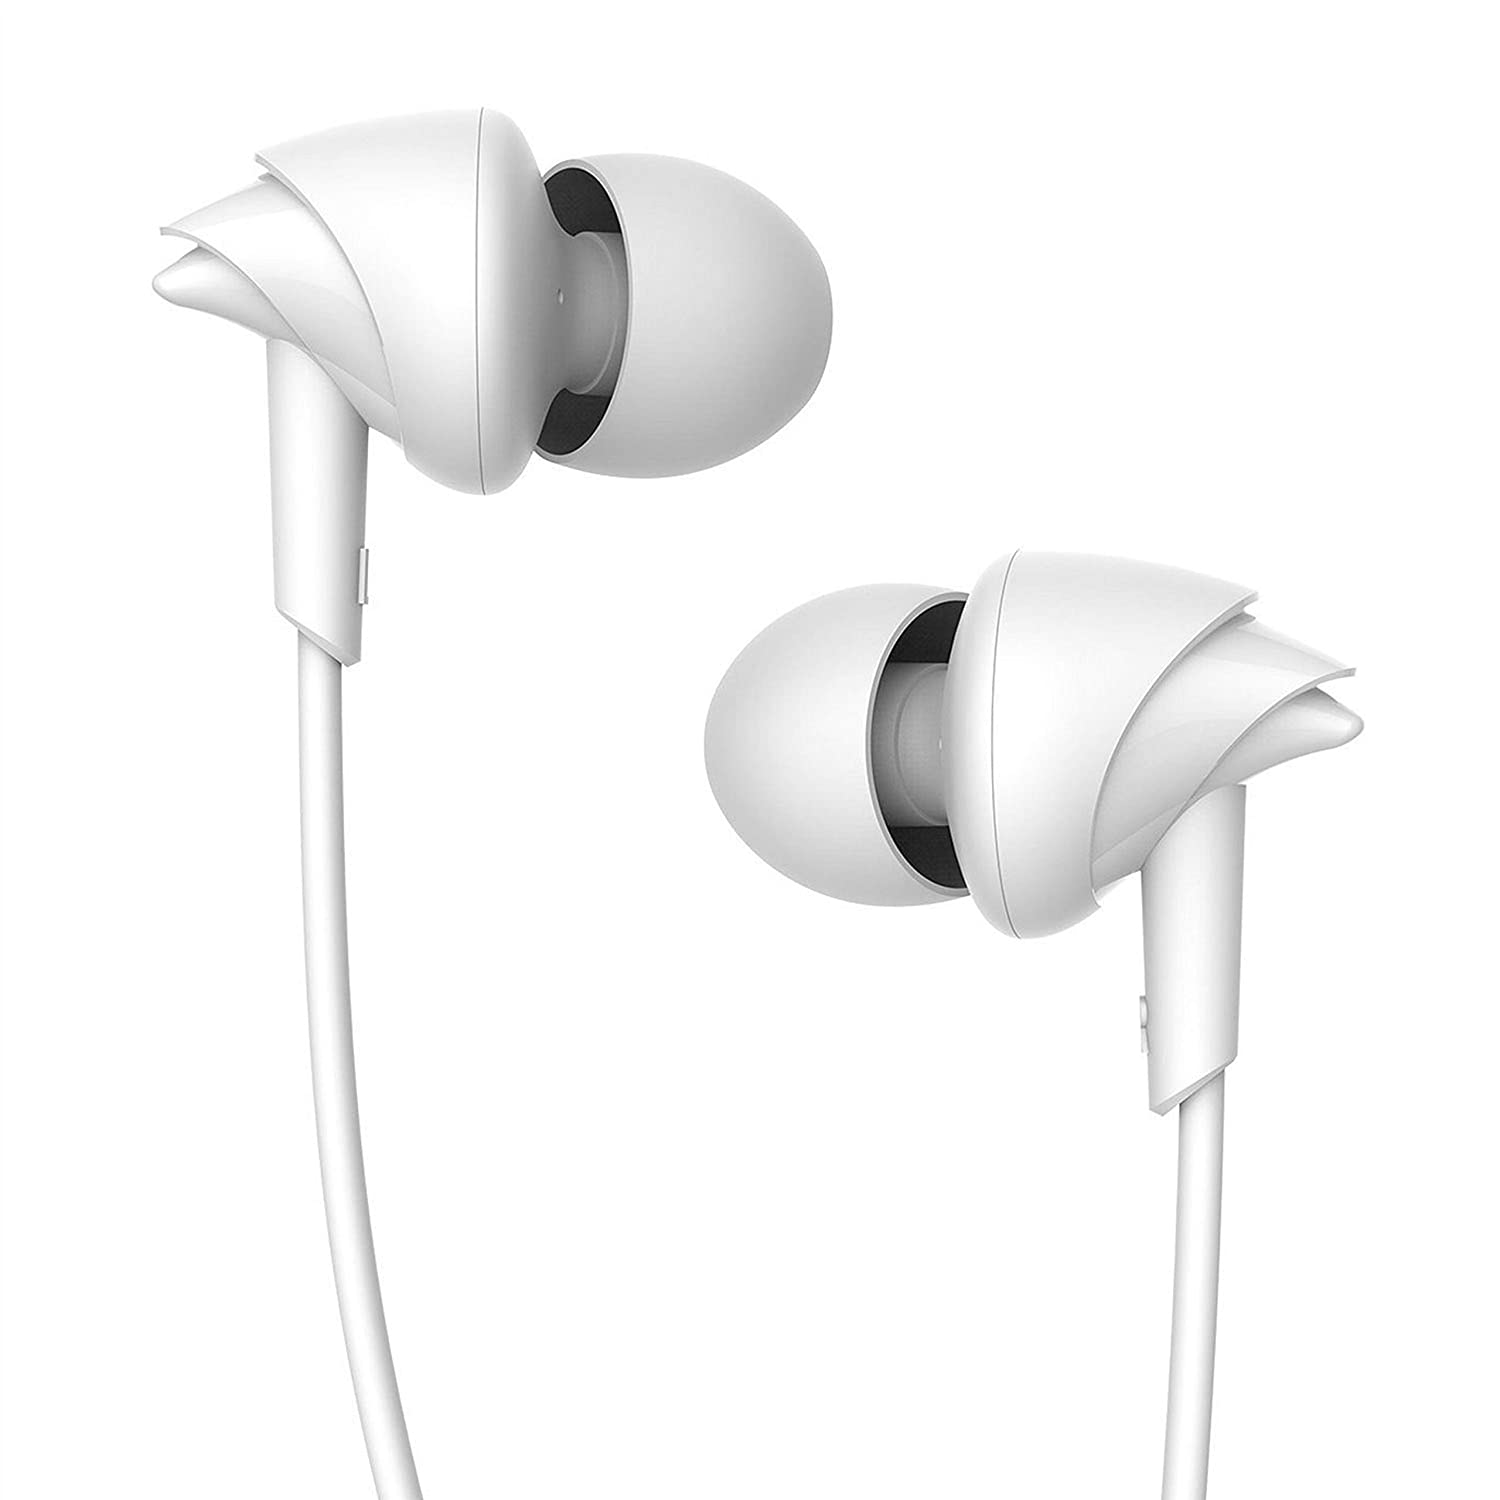 Buy boAt BassHeads 100 in-Ear Wired Earphones with Super Extra